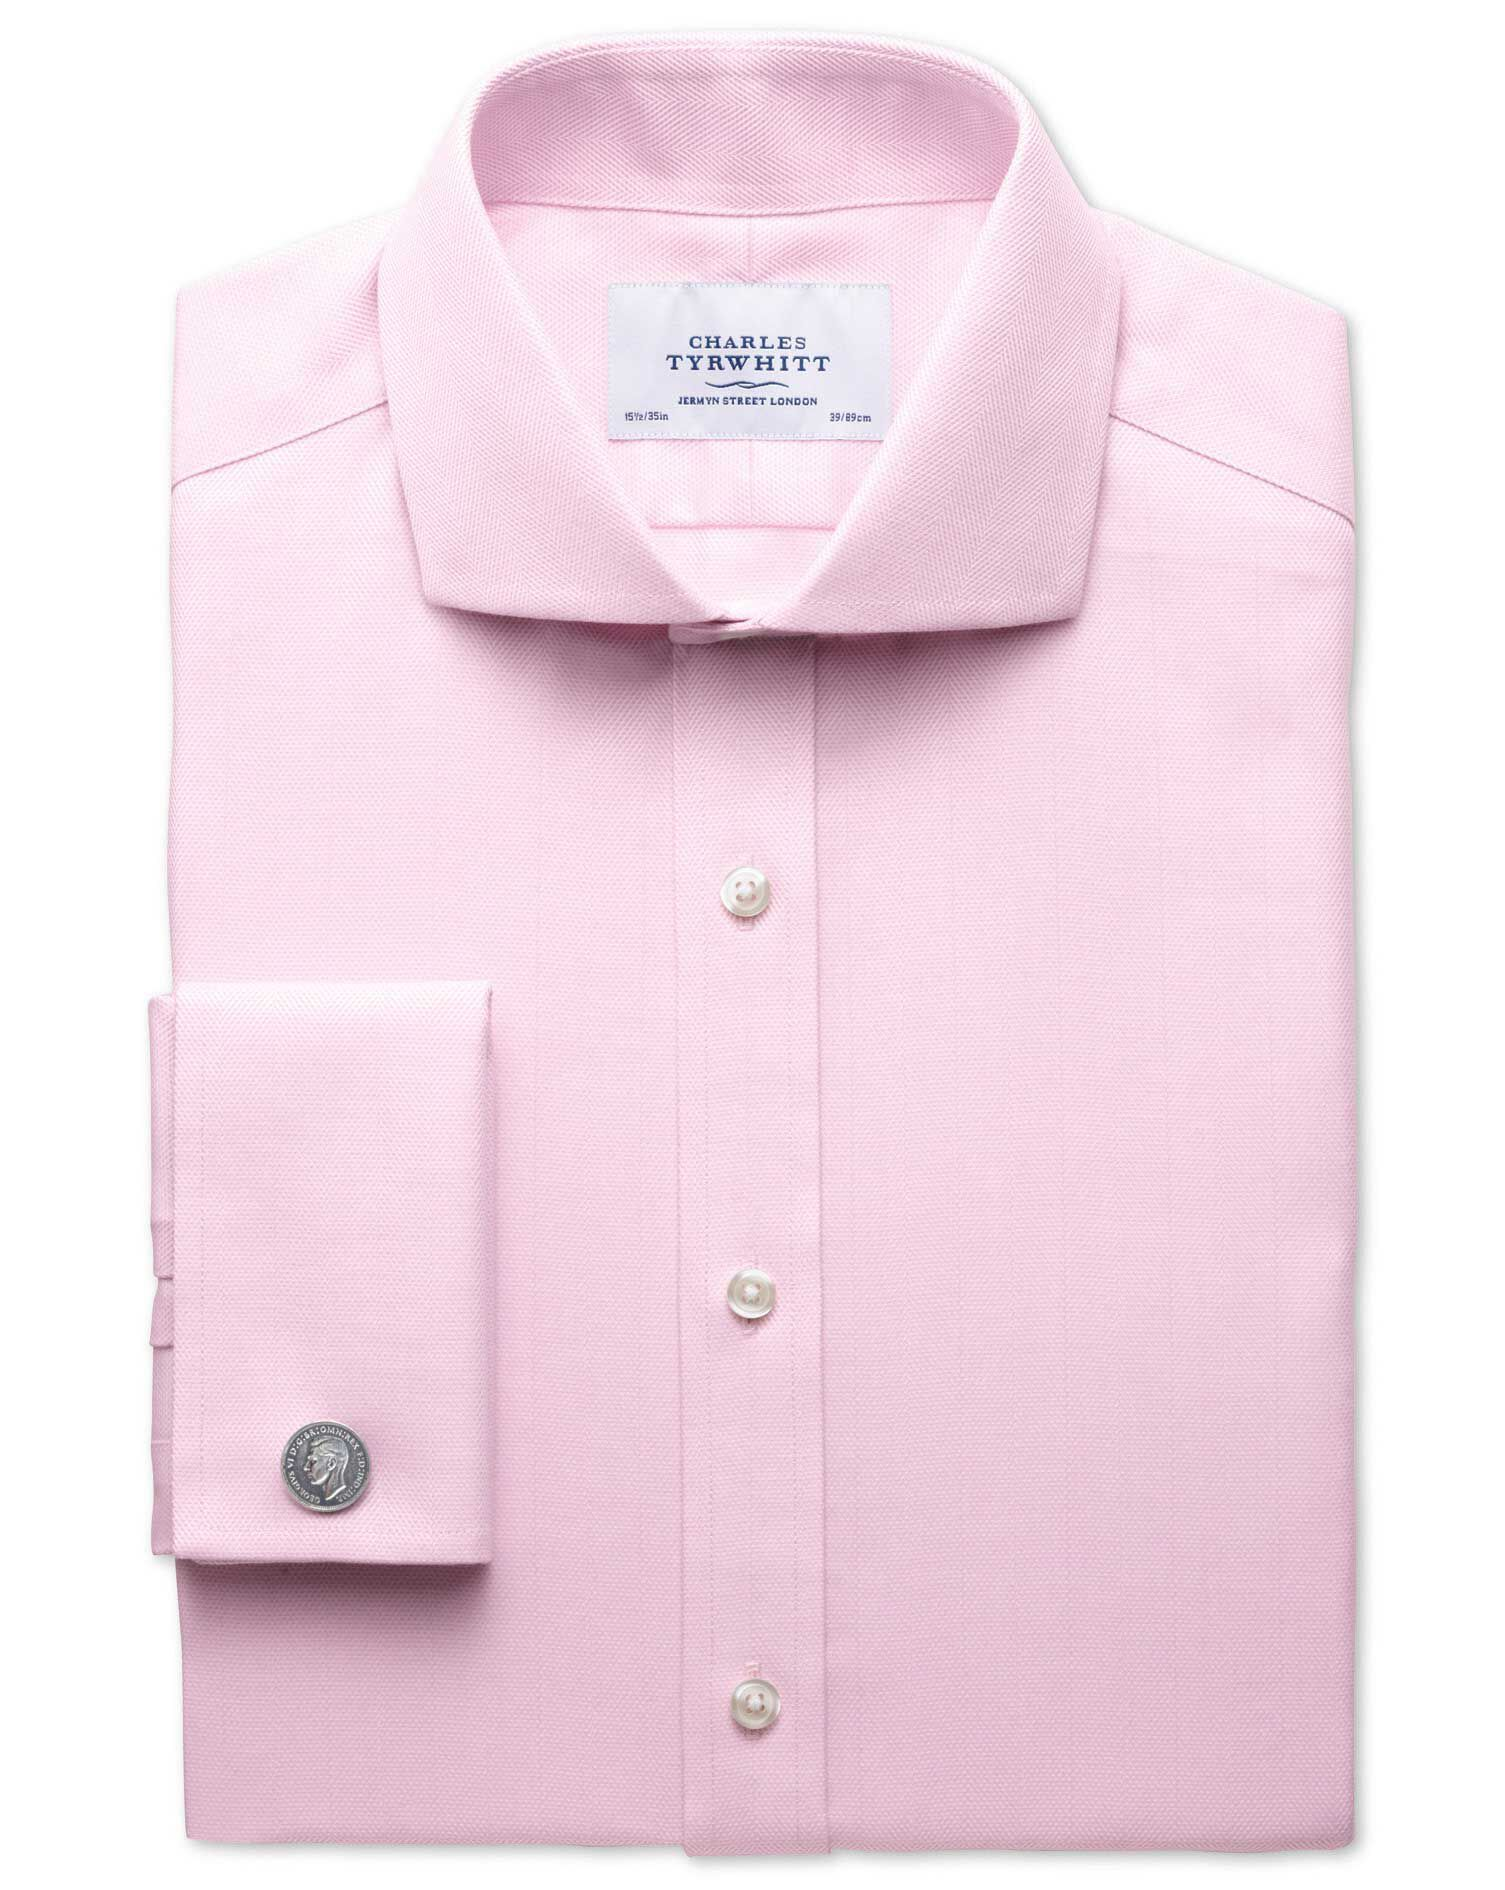 Extra Slim Fit Cutaway Collar Non-Iron Herringbone Light Pink Cotton Formal Shirt Double Cuff Size 1